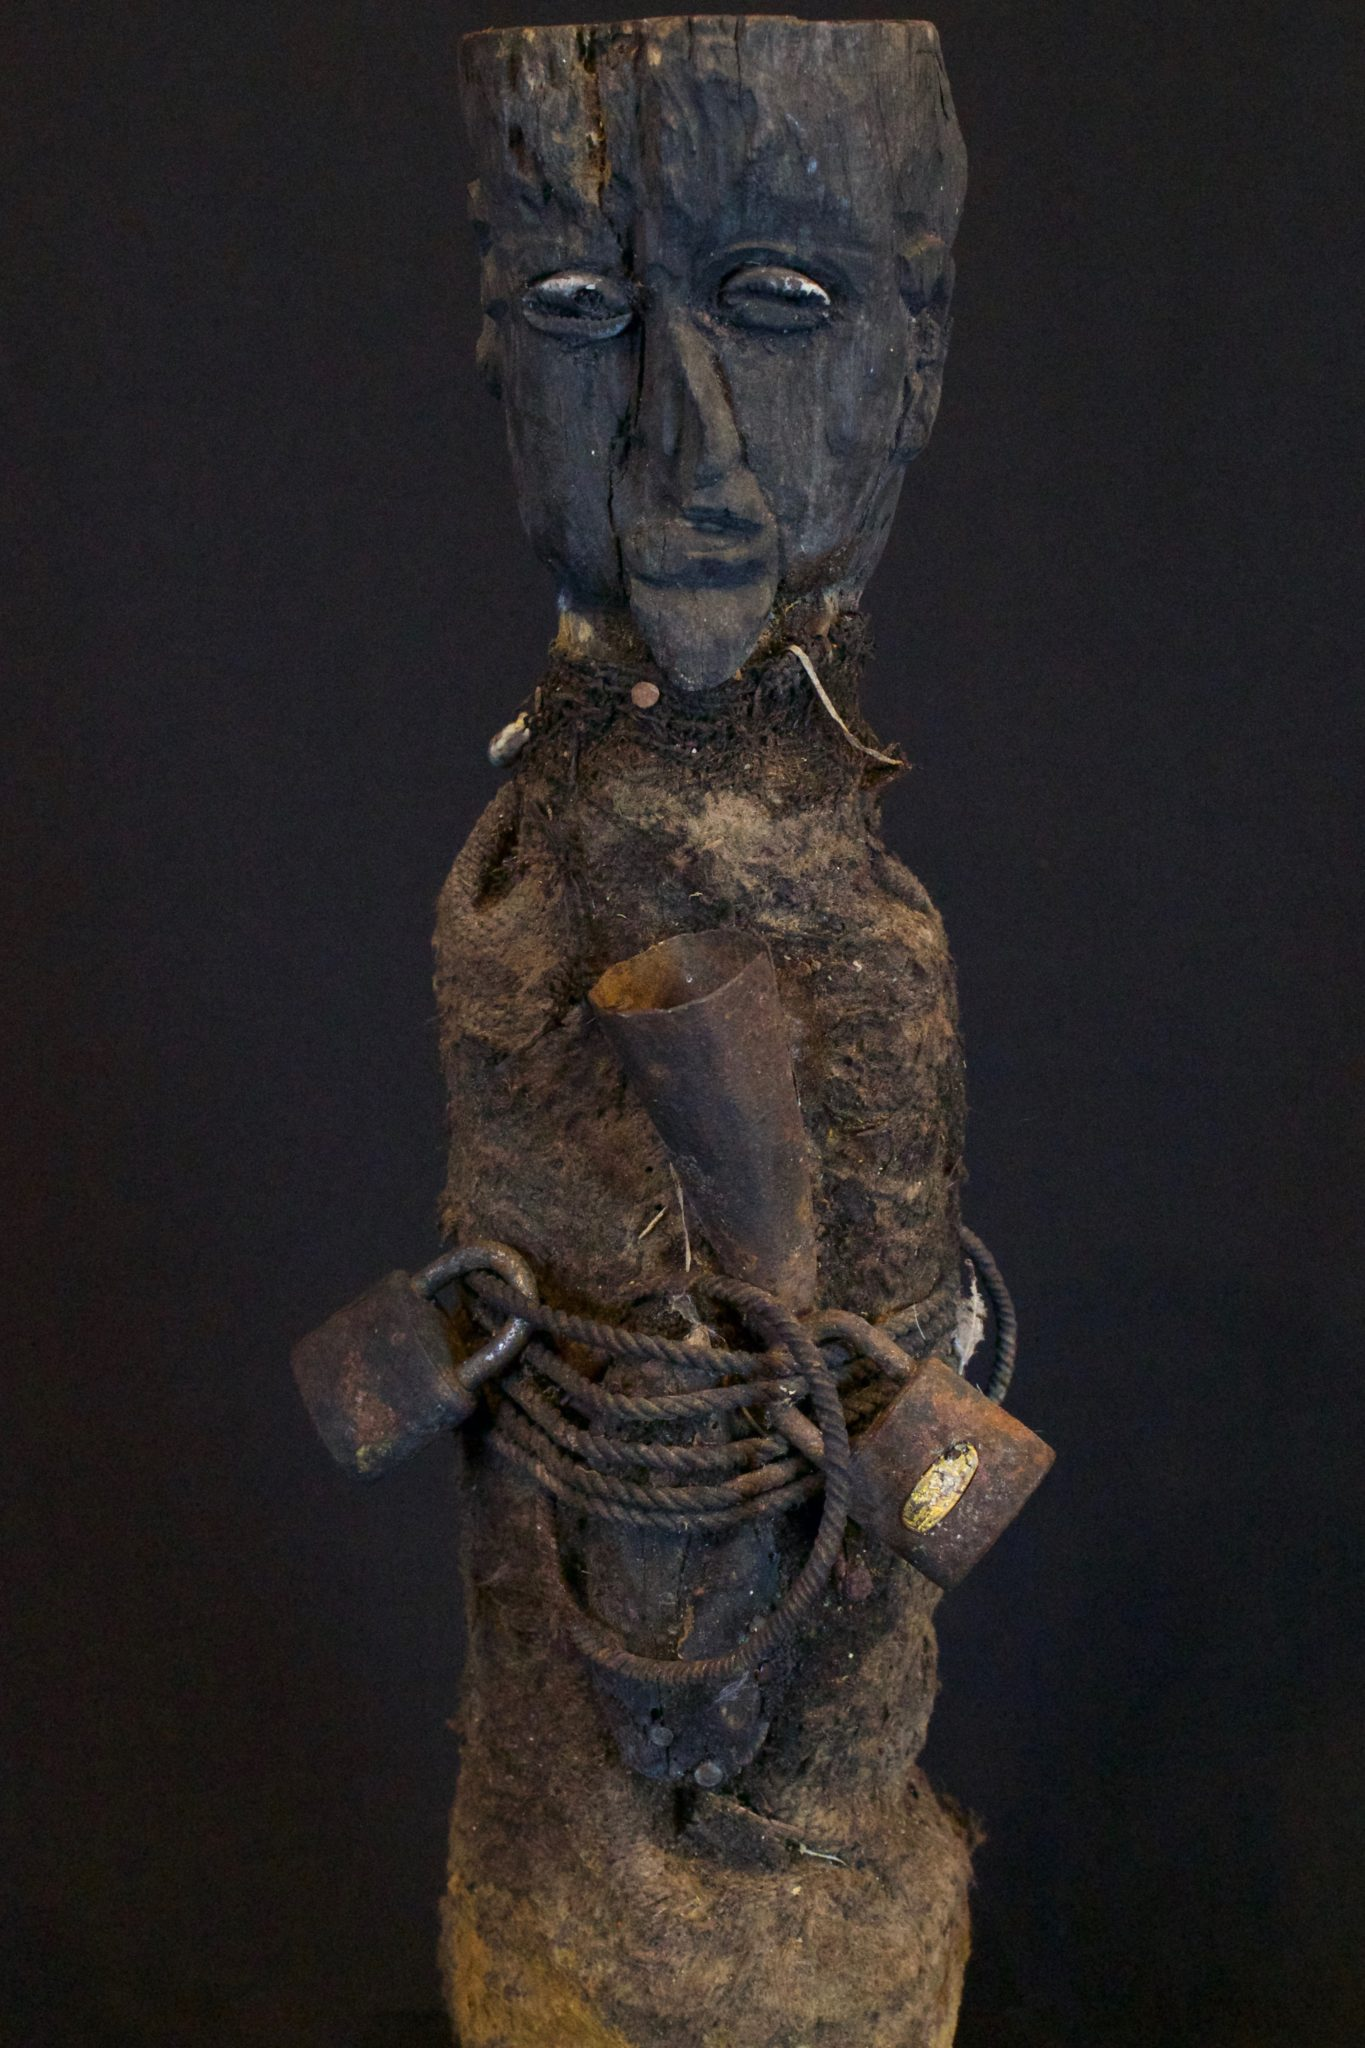 """Shaman Healing Fetish, Kalimantan, Borneo, Indonesia, Dayak Tribe Late 19th c, Wood, metal, shell, fiber netting. This is used by the shaman to contact the spirits for healing rituals. 16"""" x 6"""" x 5"""", $1800."""